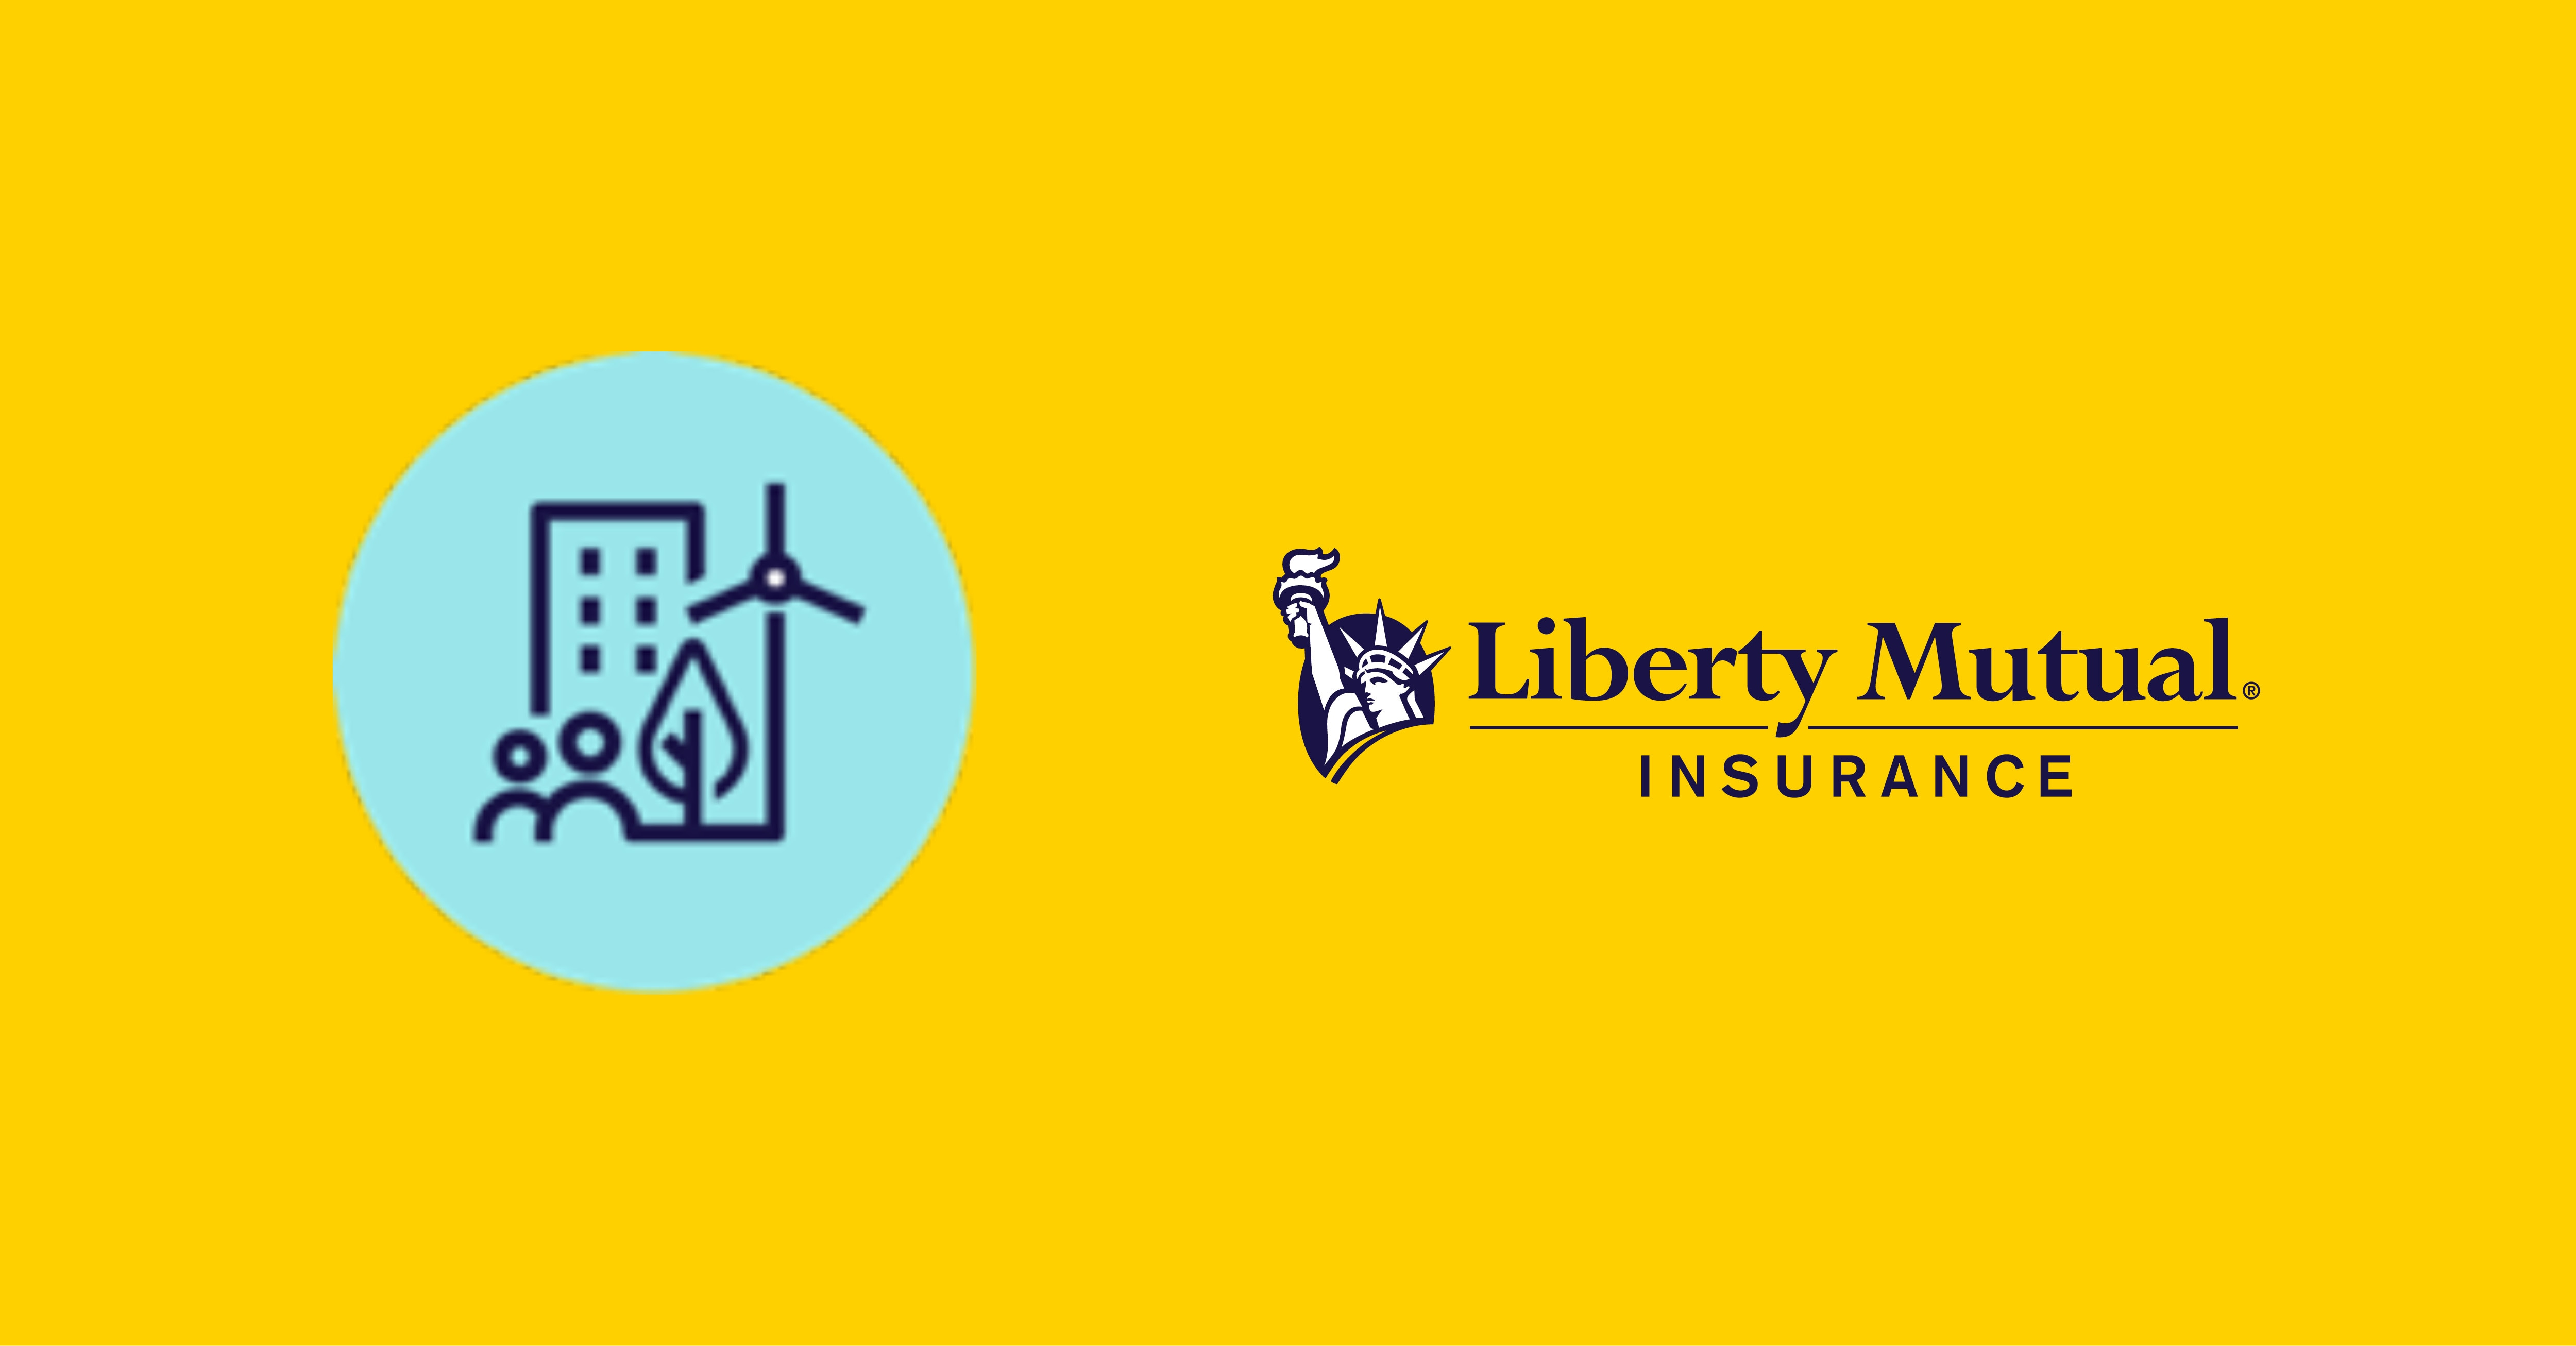 Liberty Mutual Insurance Sustainability Image